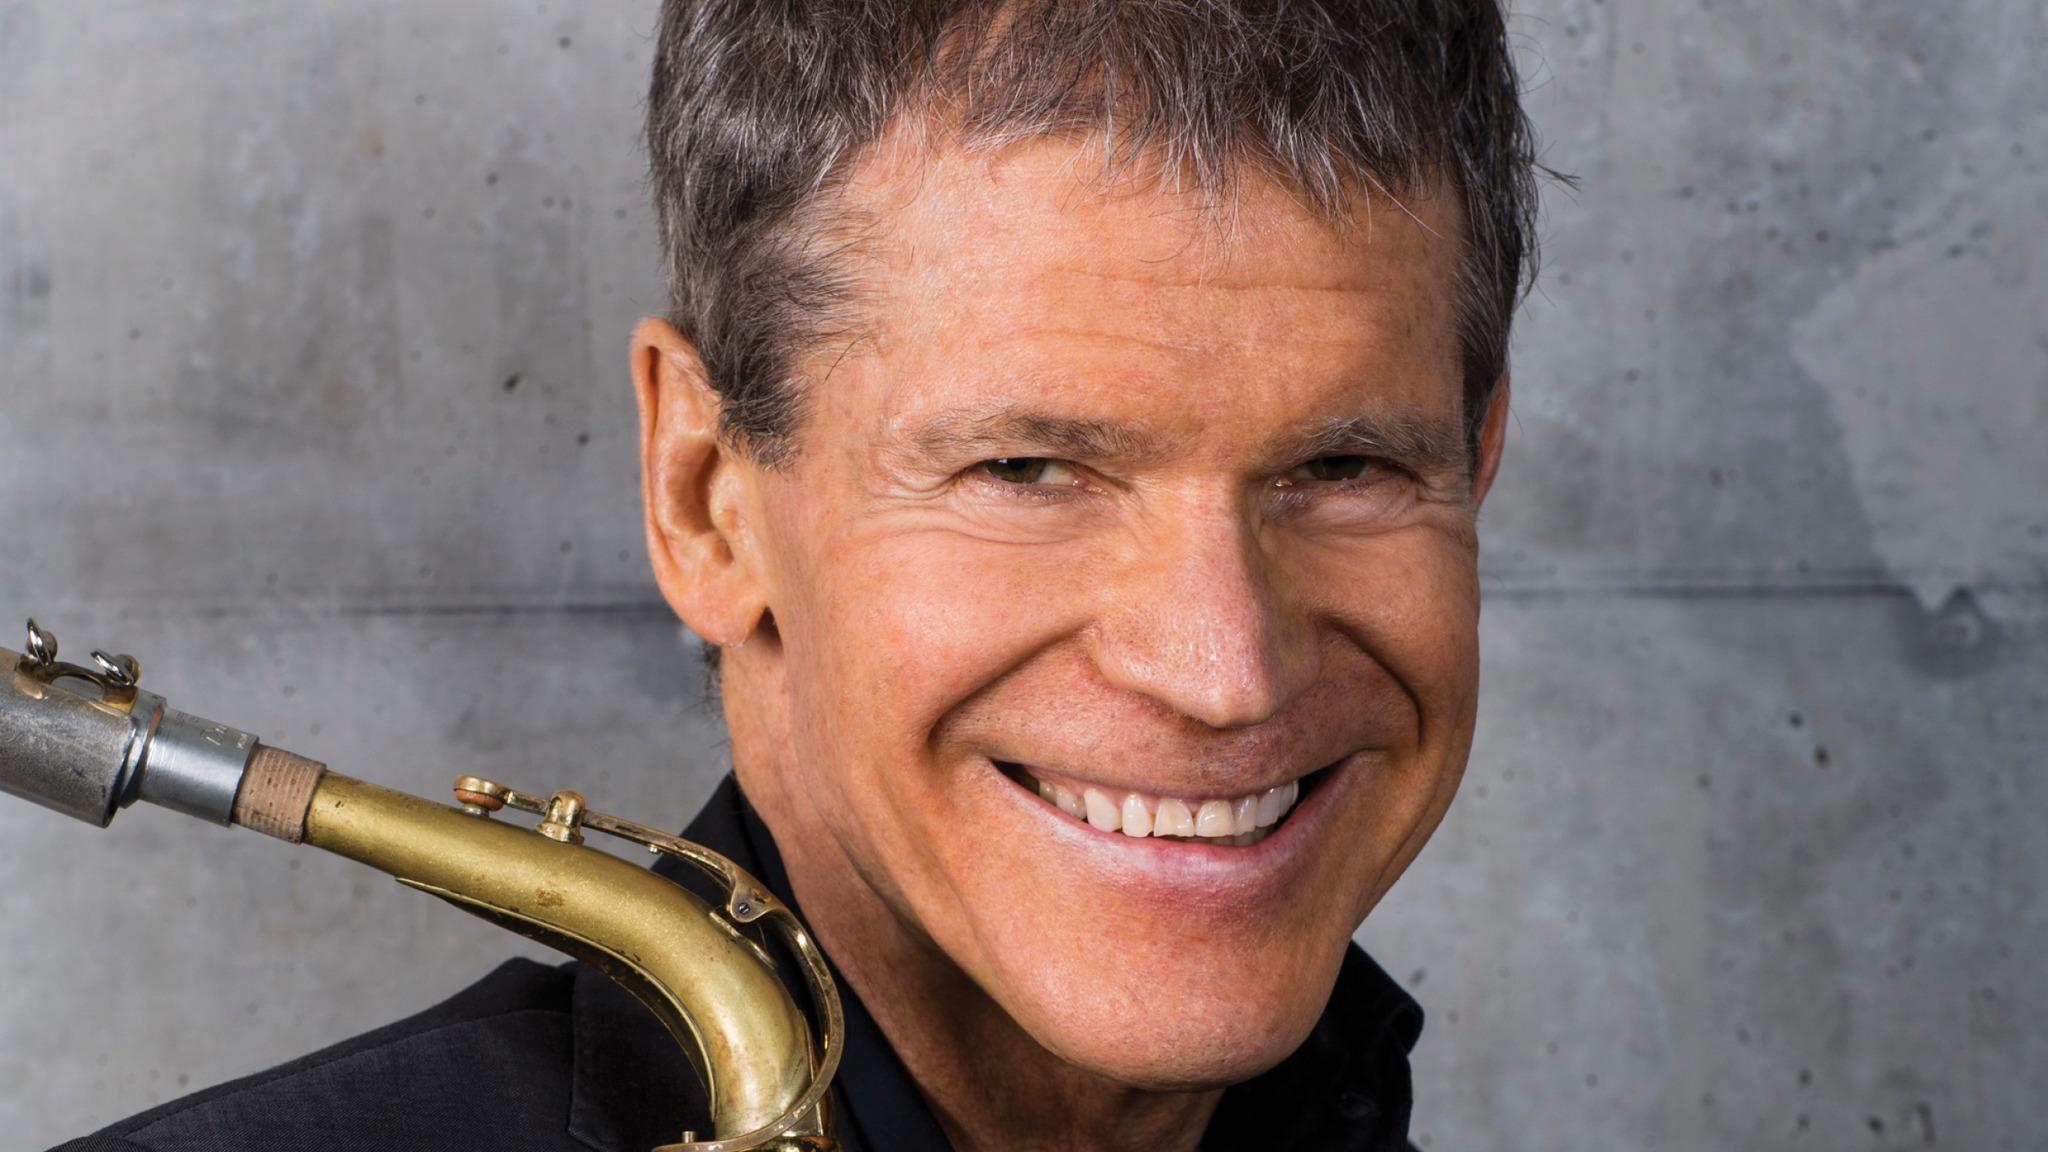 SORRY, THIS EVENT IS NO LONGER ACTIVE<br>David Sanborn at Blue Note Hawaii - Honolulu, HI 96815